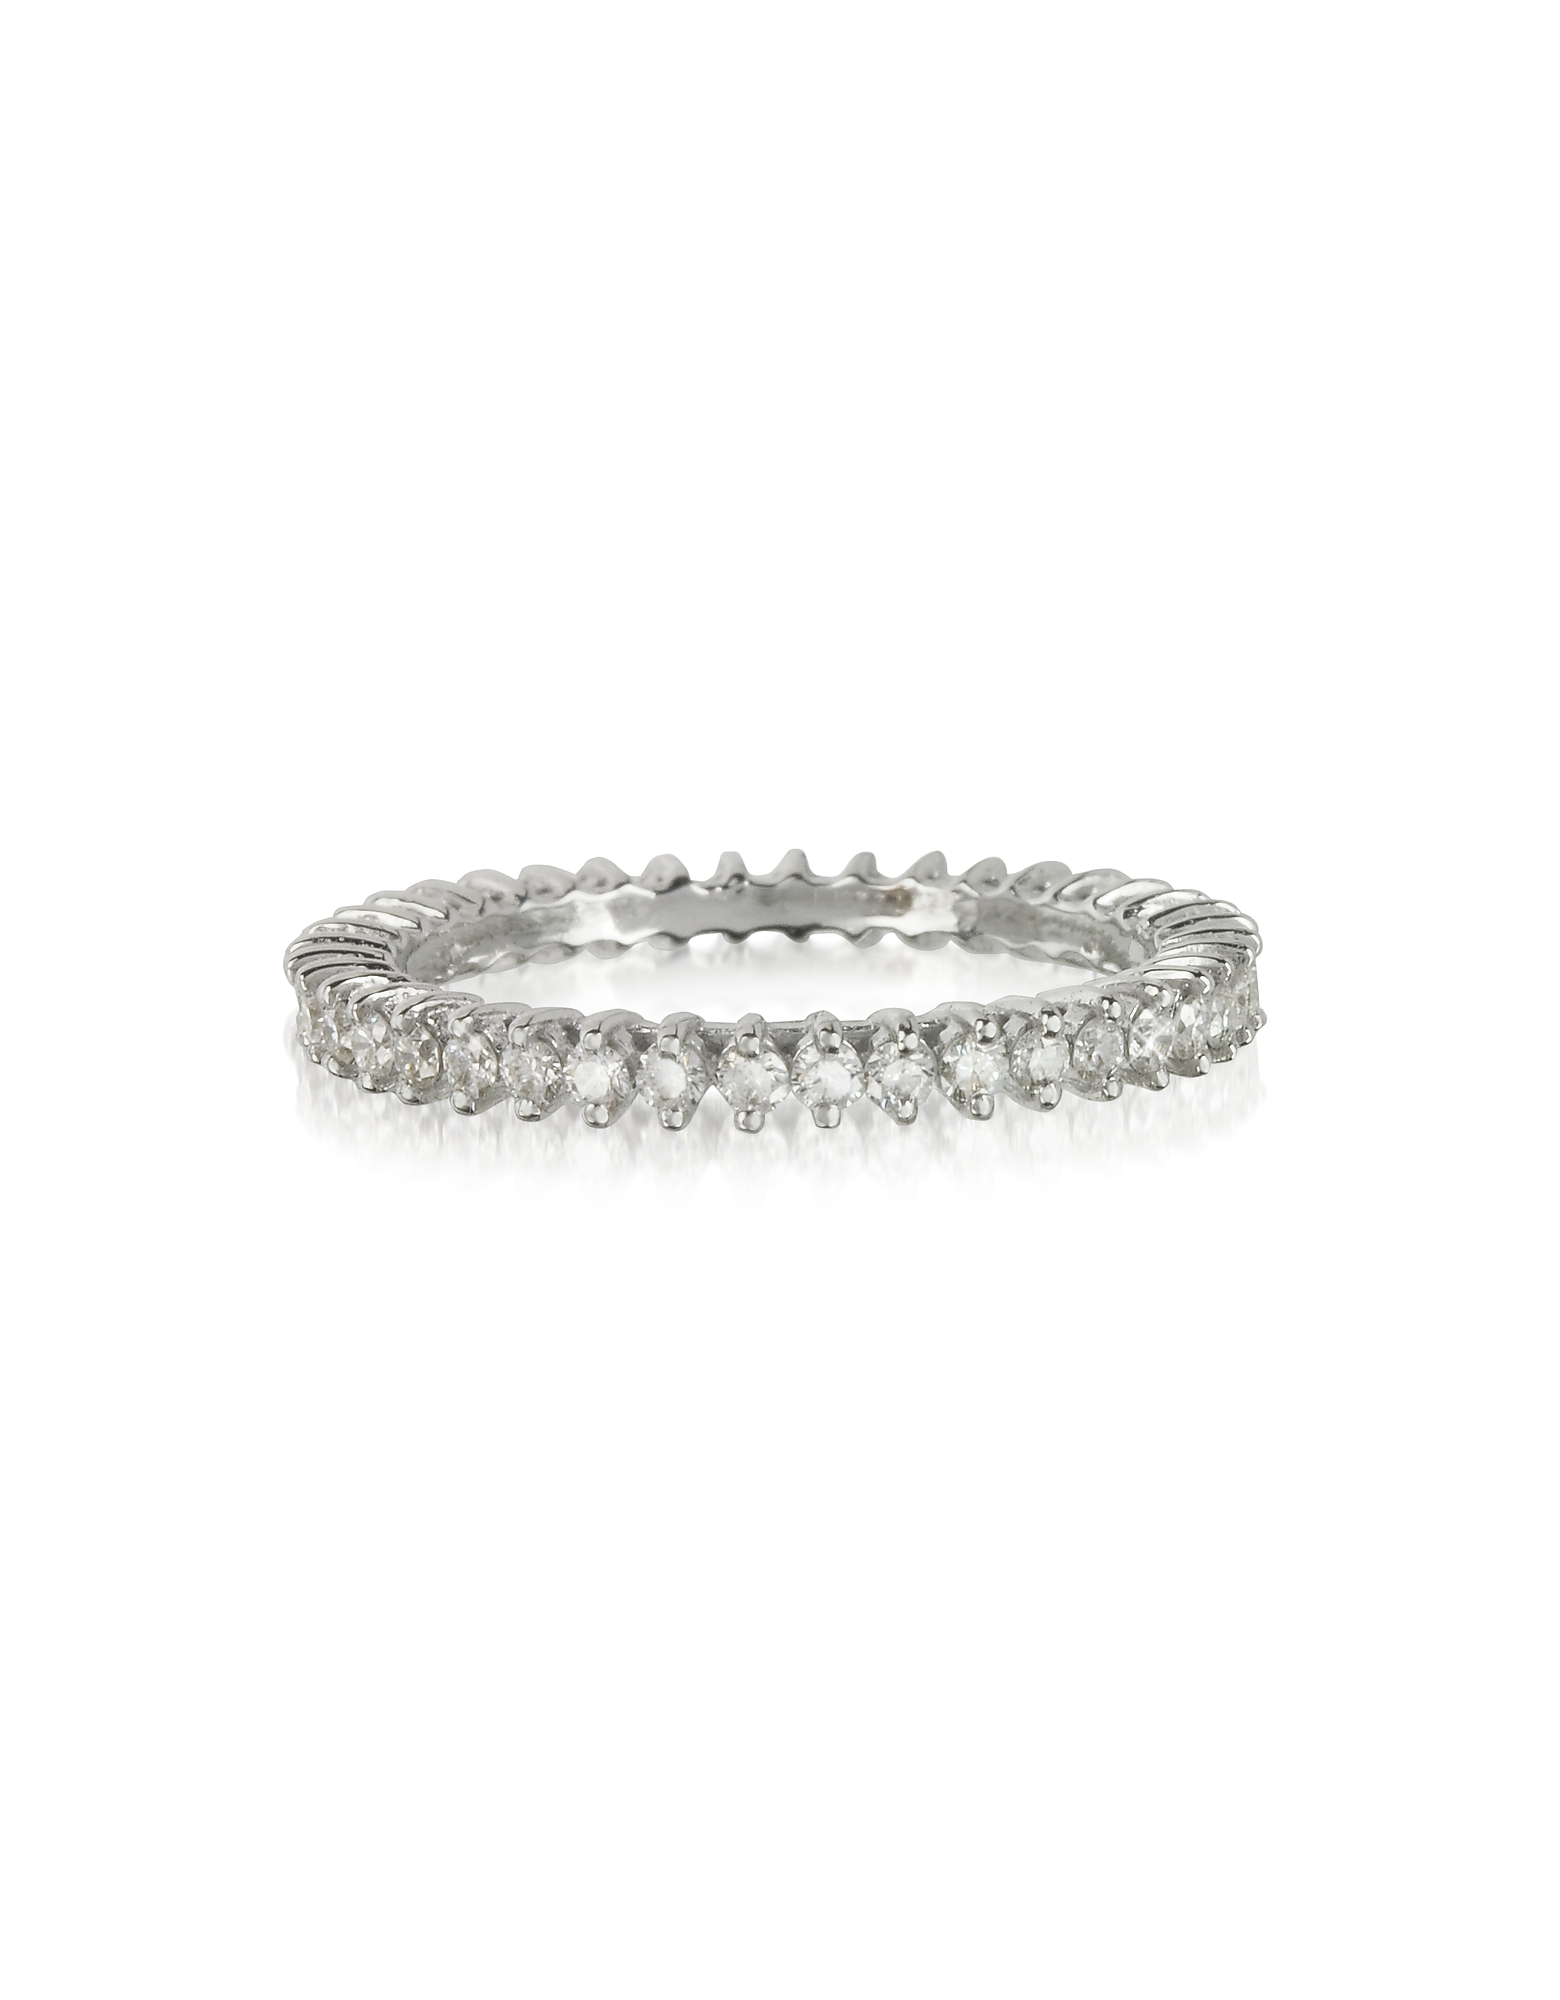 Forzieri Designer Rings, White Gold and Diamonds Eternity Band Ring